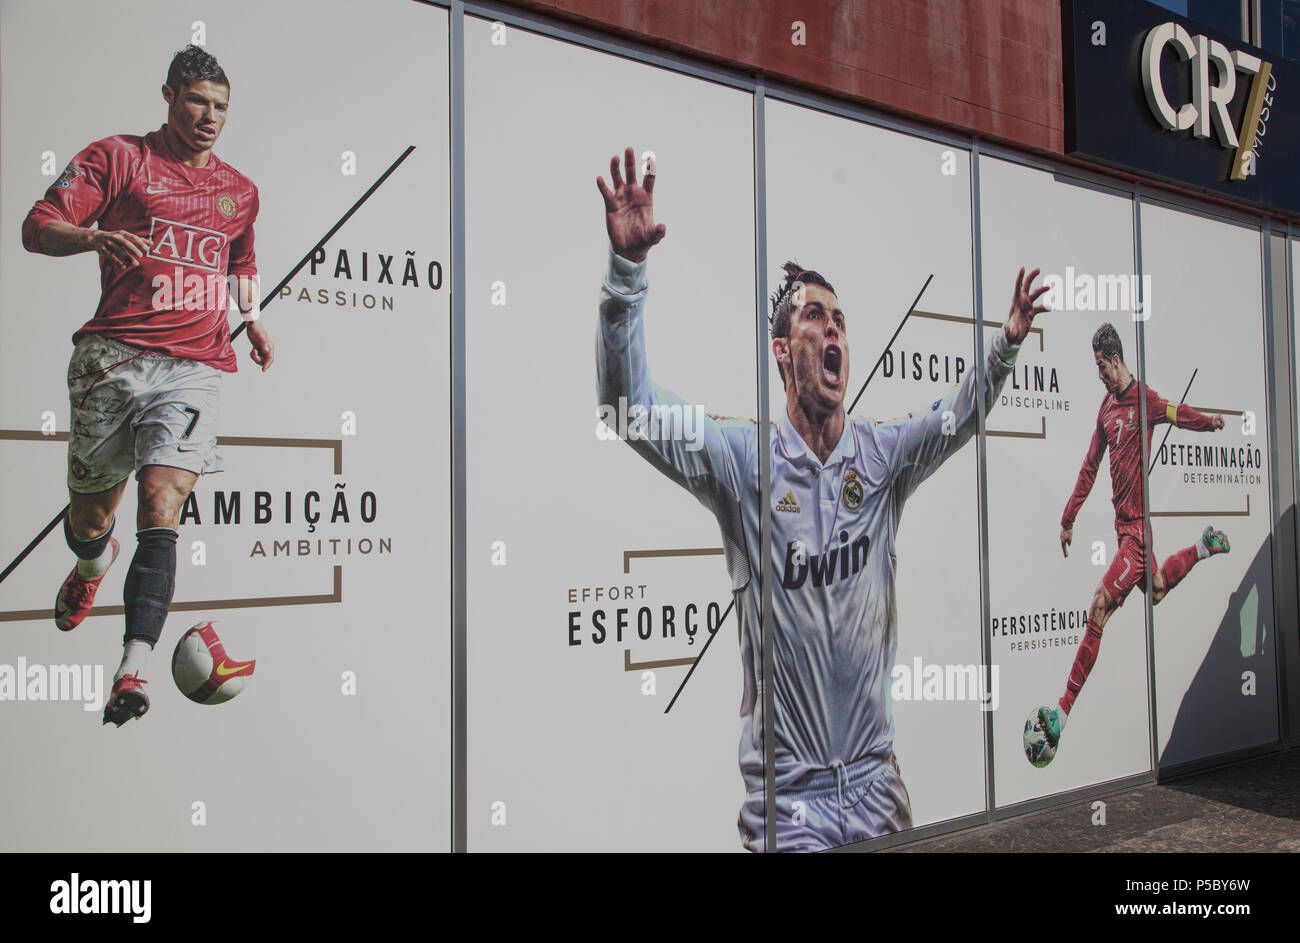 Images of Christiano Ronaldo outsde the CR7 Museum in Funchal Madeira - Stock Image